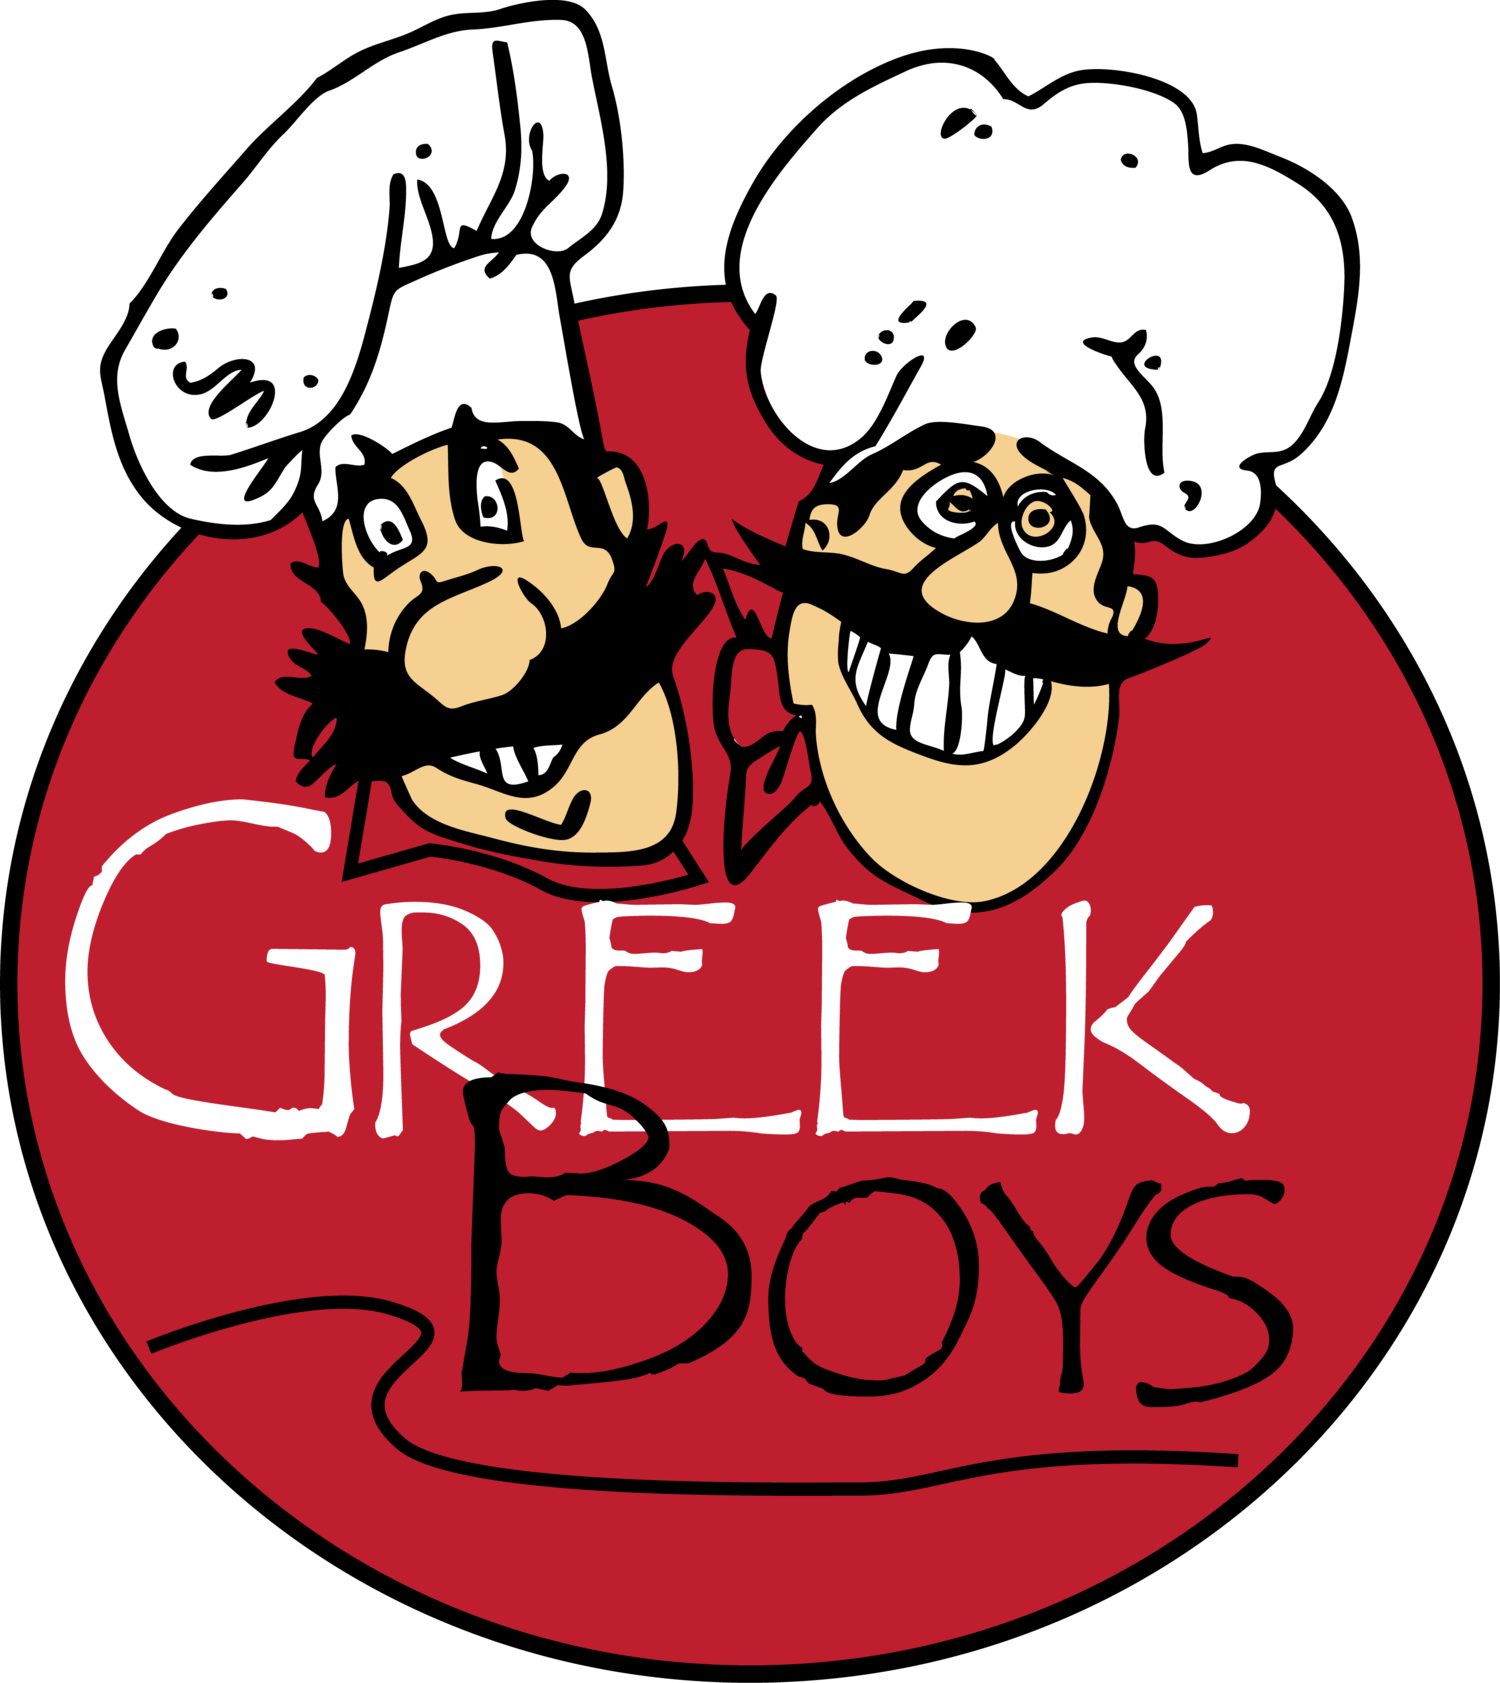 Clipart fish or steak vector freeuse stock Greek Boys vector freeuse stock